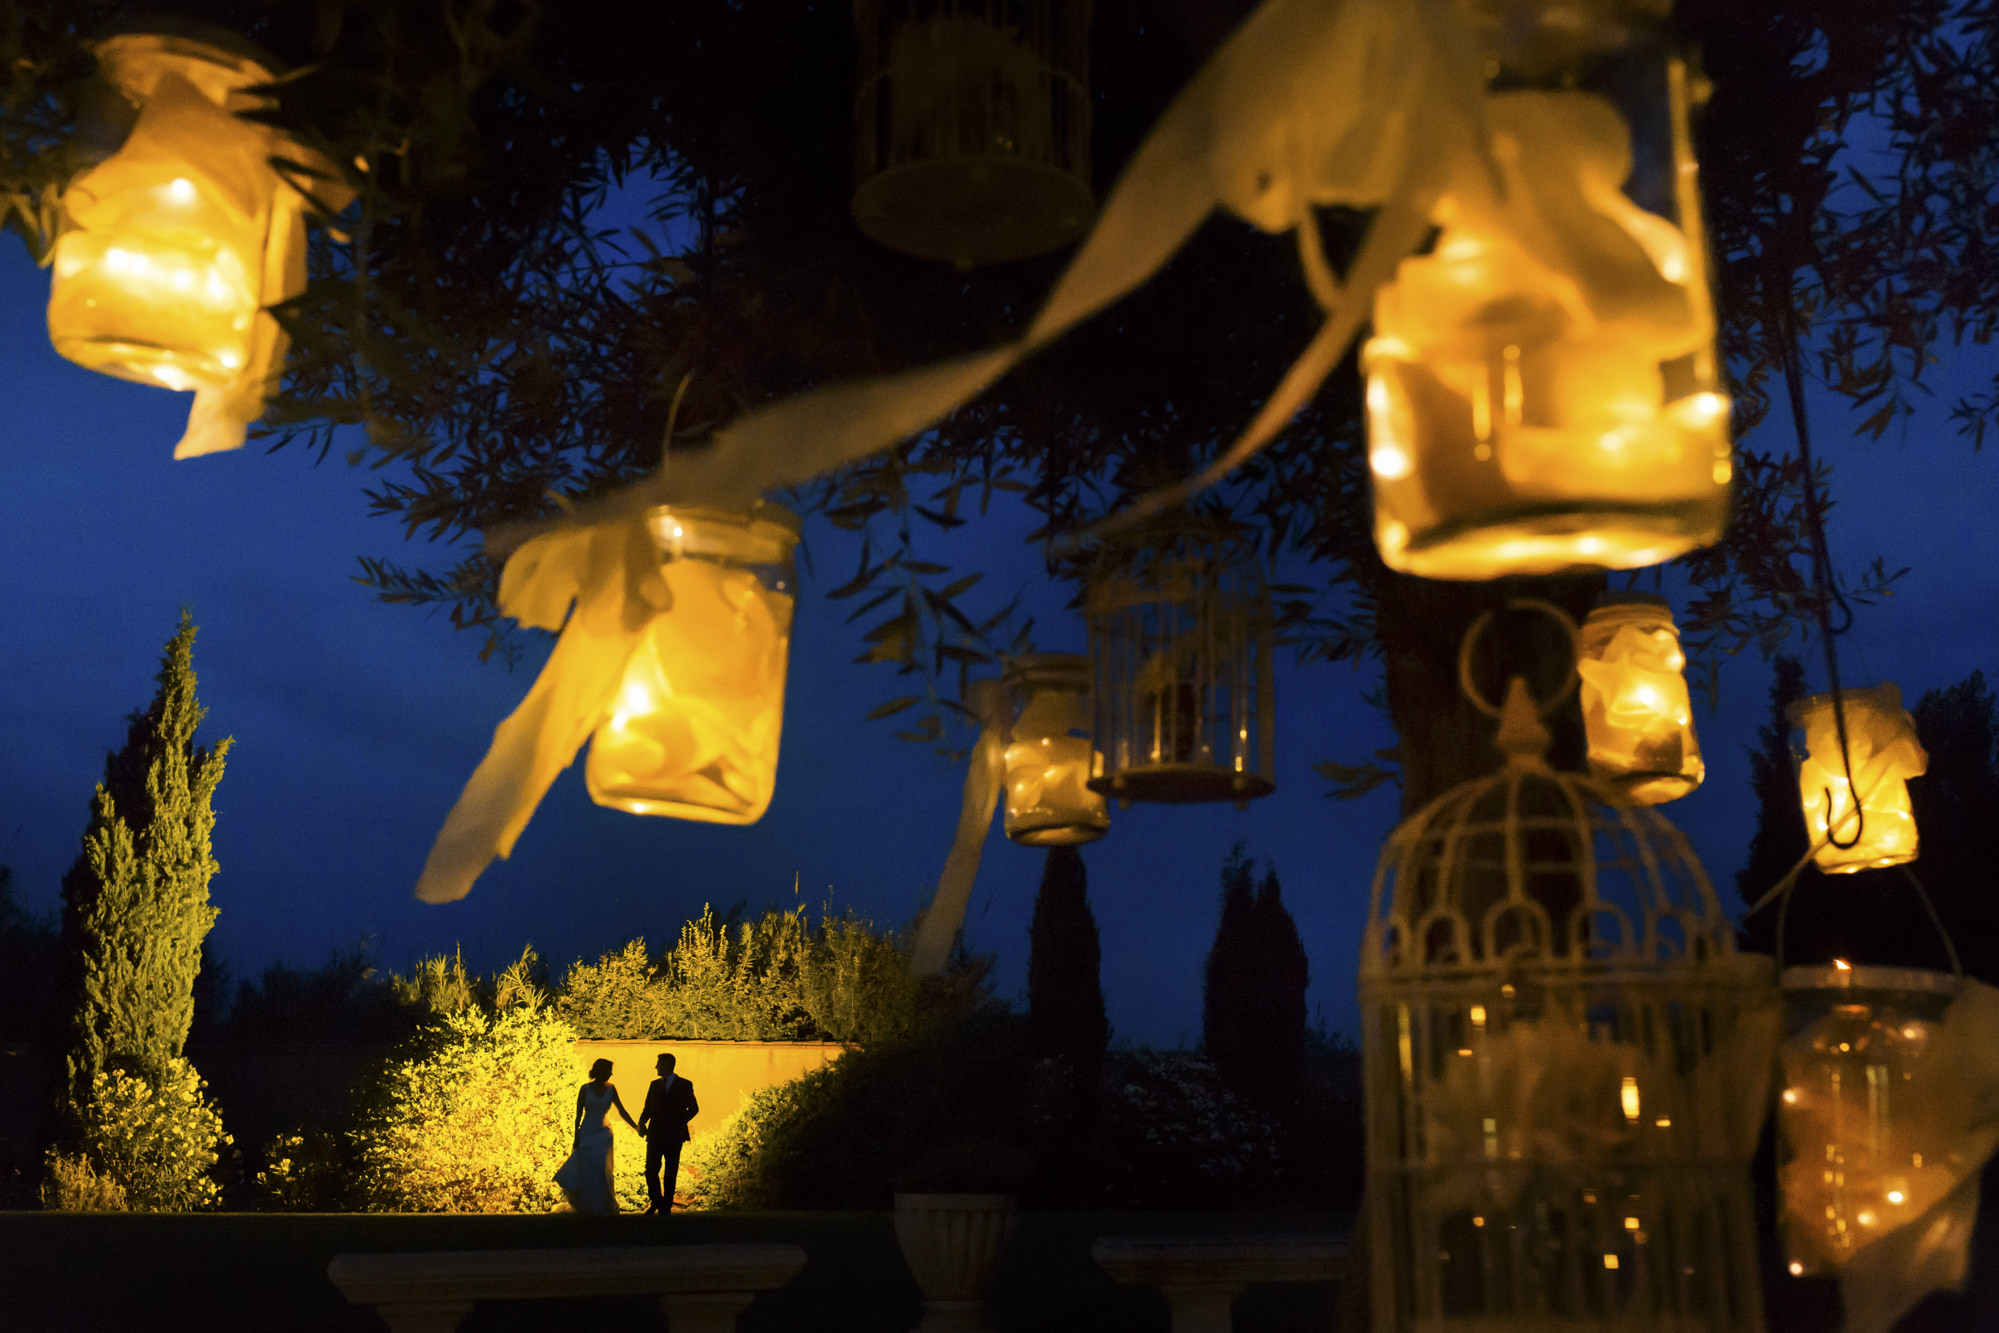 Silhouette couple through golden lanterns - photo by Look Fotographica